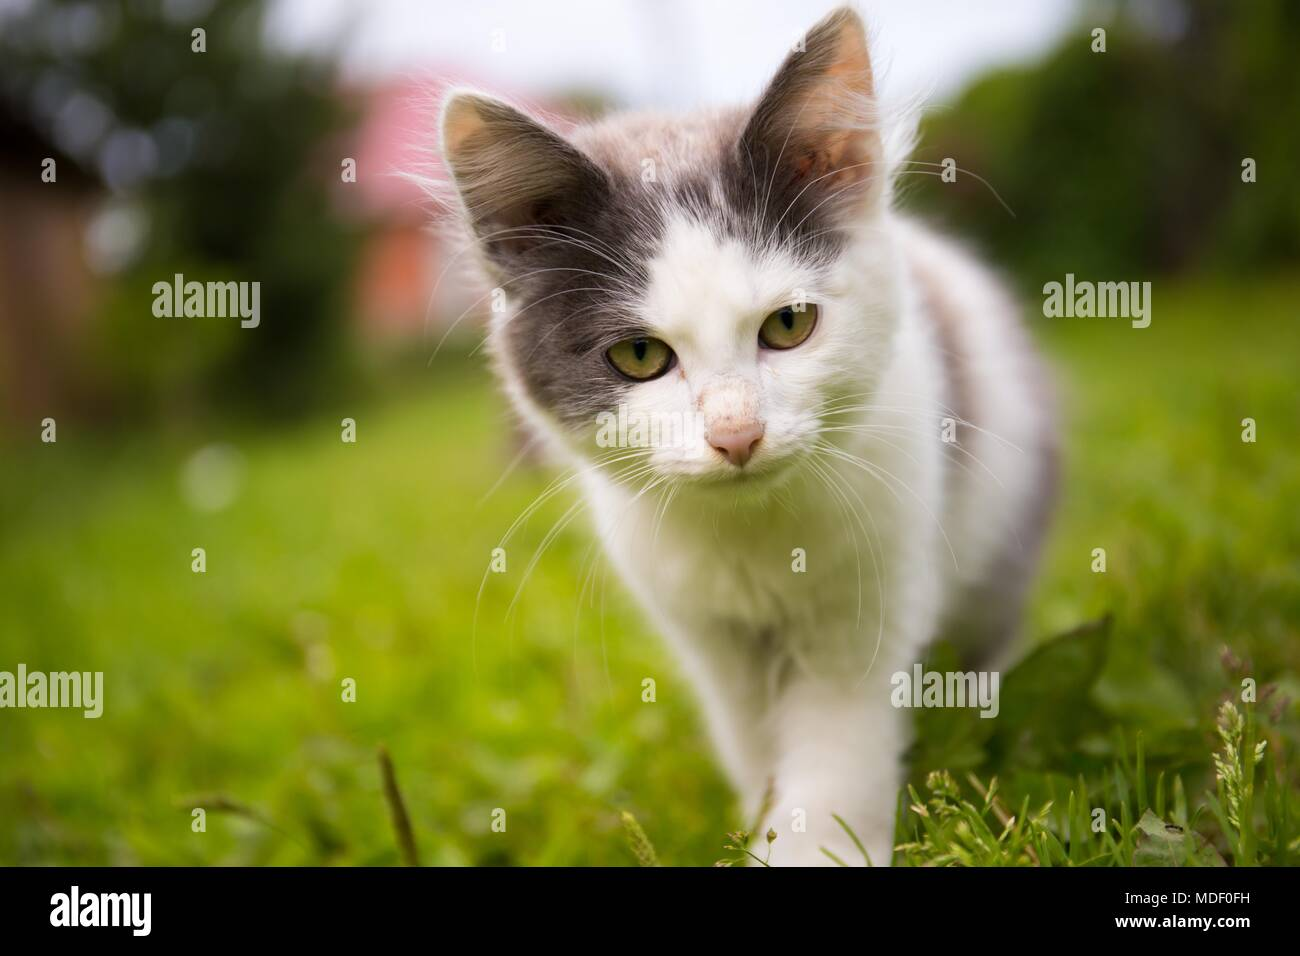 Domestic Cats - Stock Image